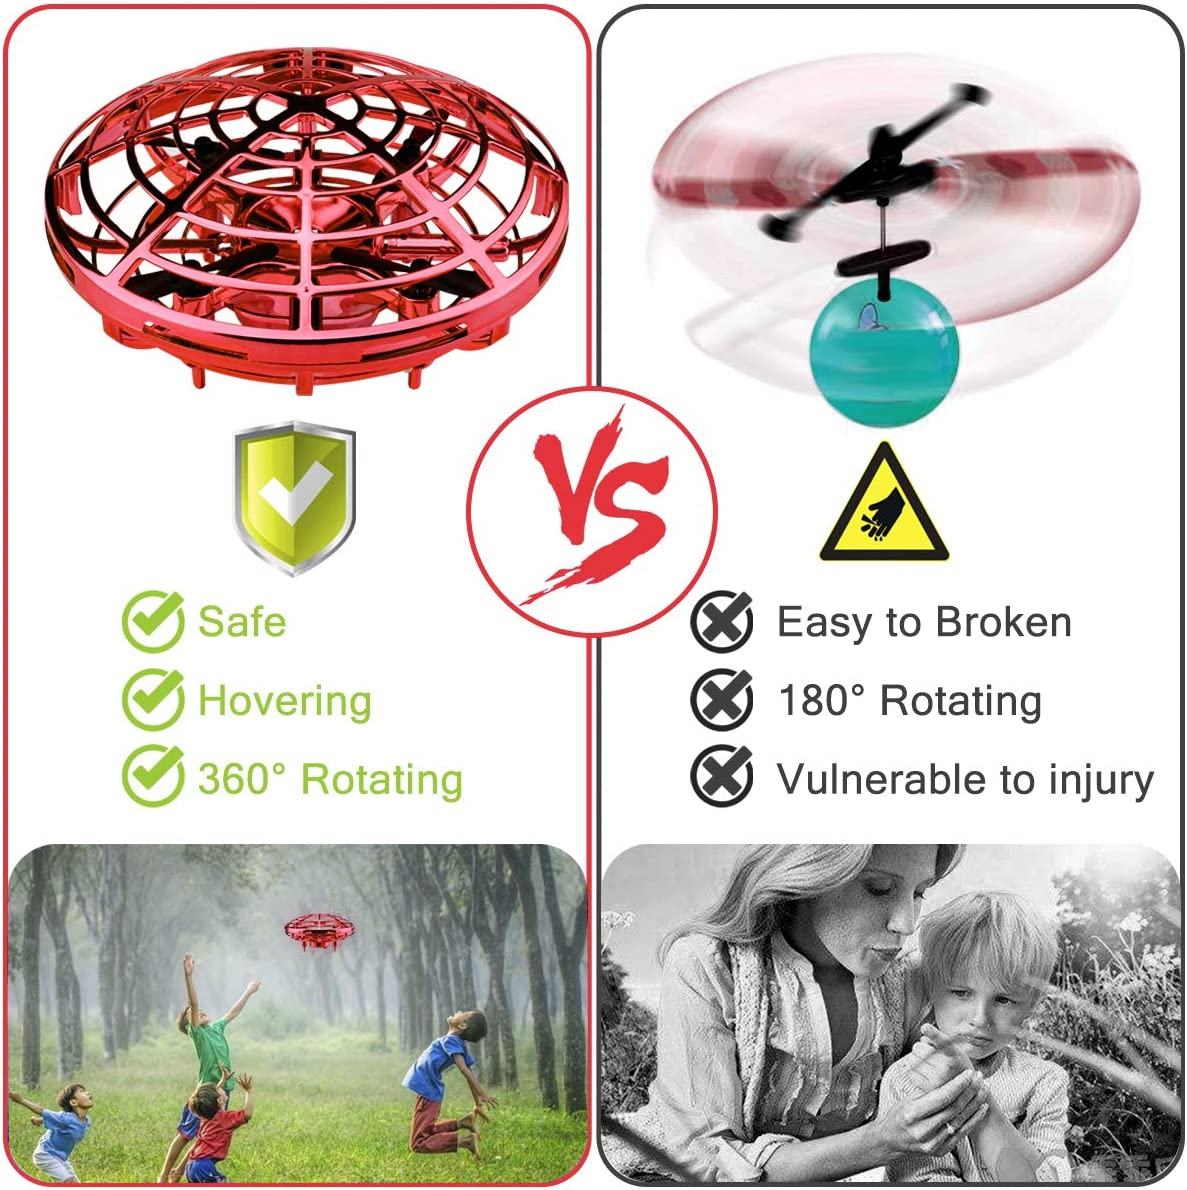 YOSICIL Hand Operated Drones for Kids Mini Drone UFO Flying Ball 360 Degree Rotation Toys for Beginner Boys Girls